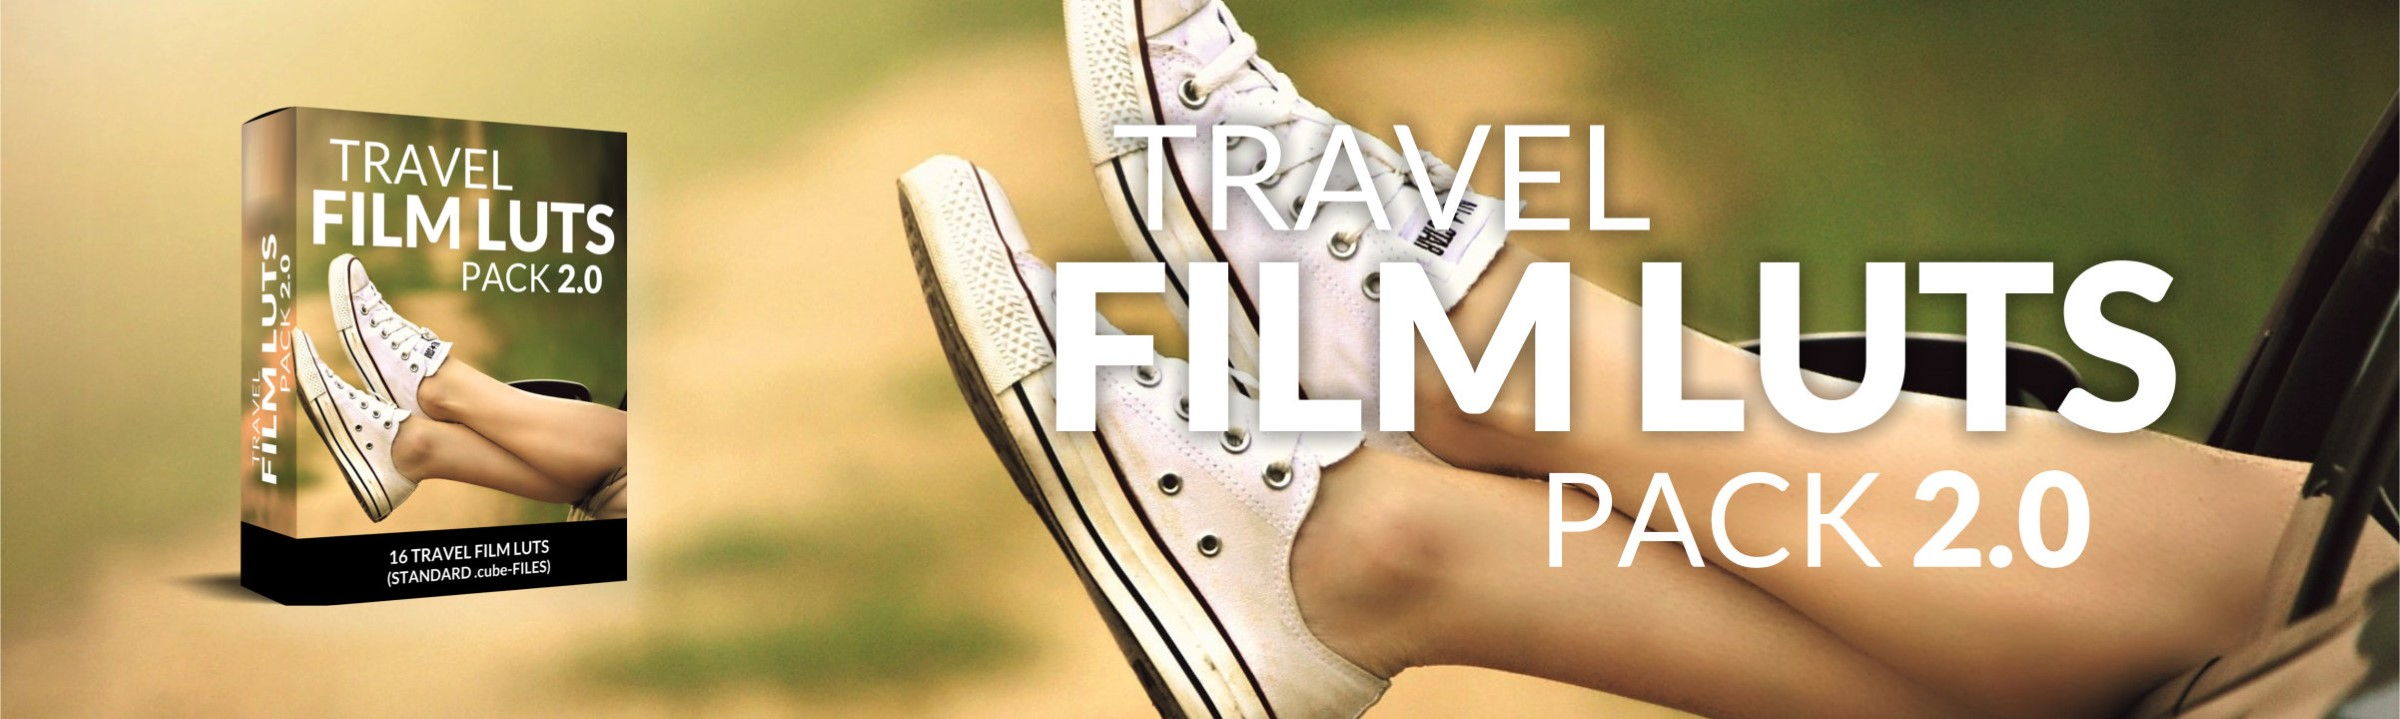 LUTs for Travel Videos Header